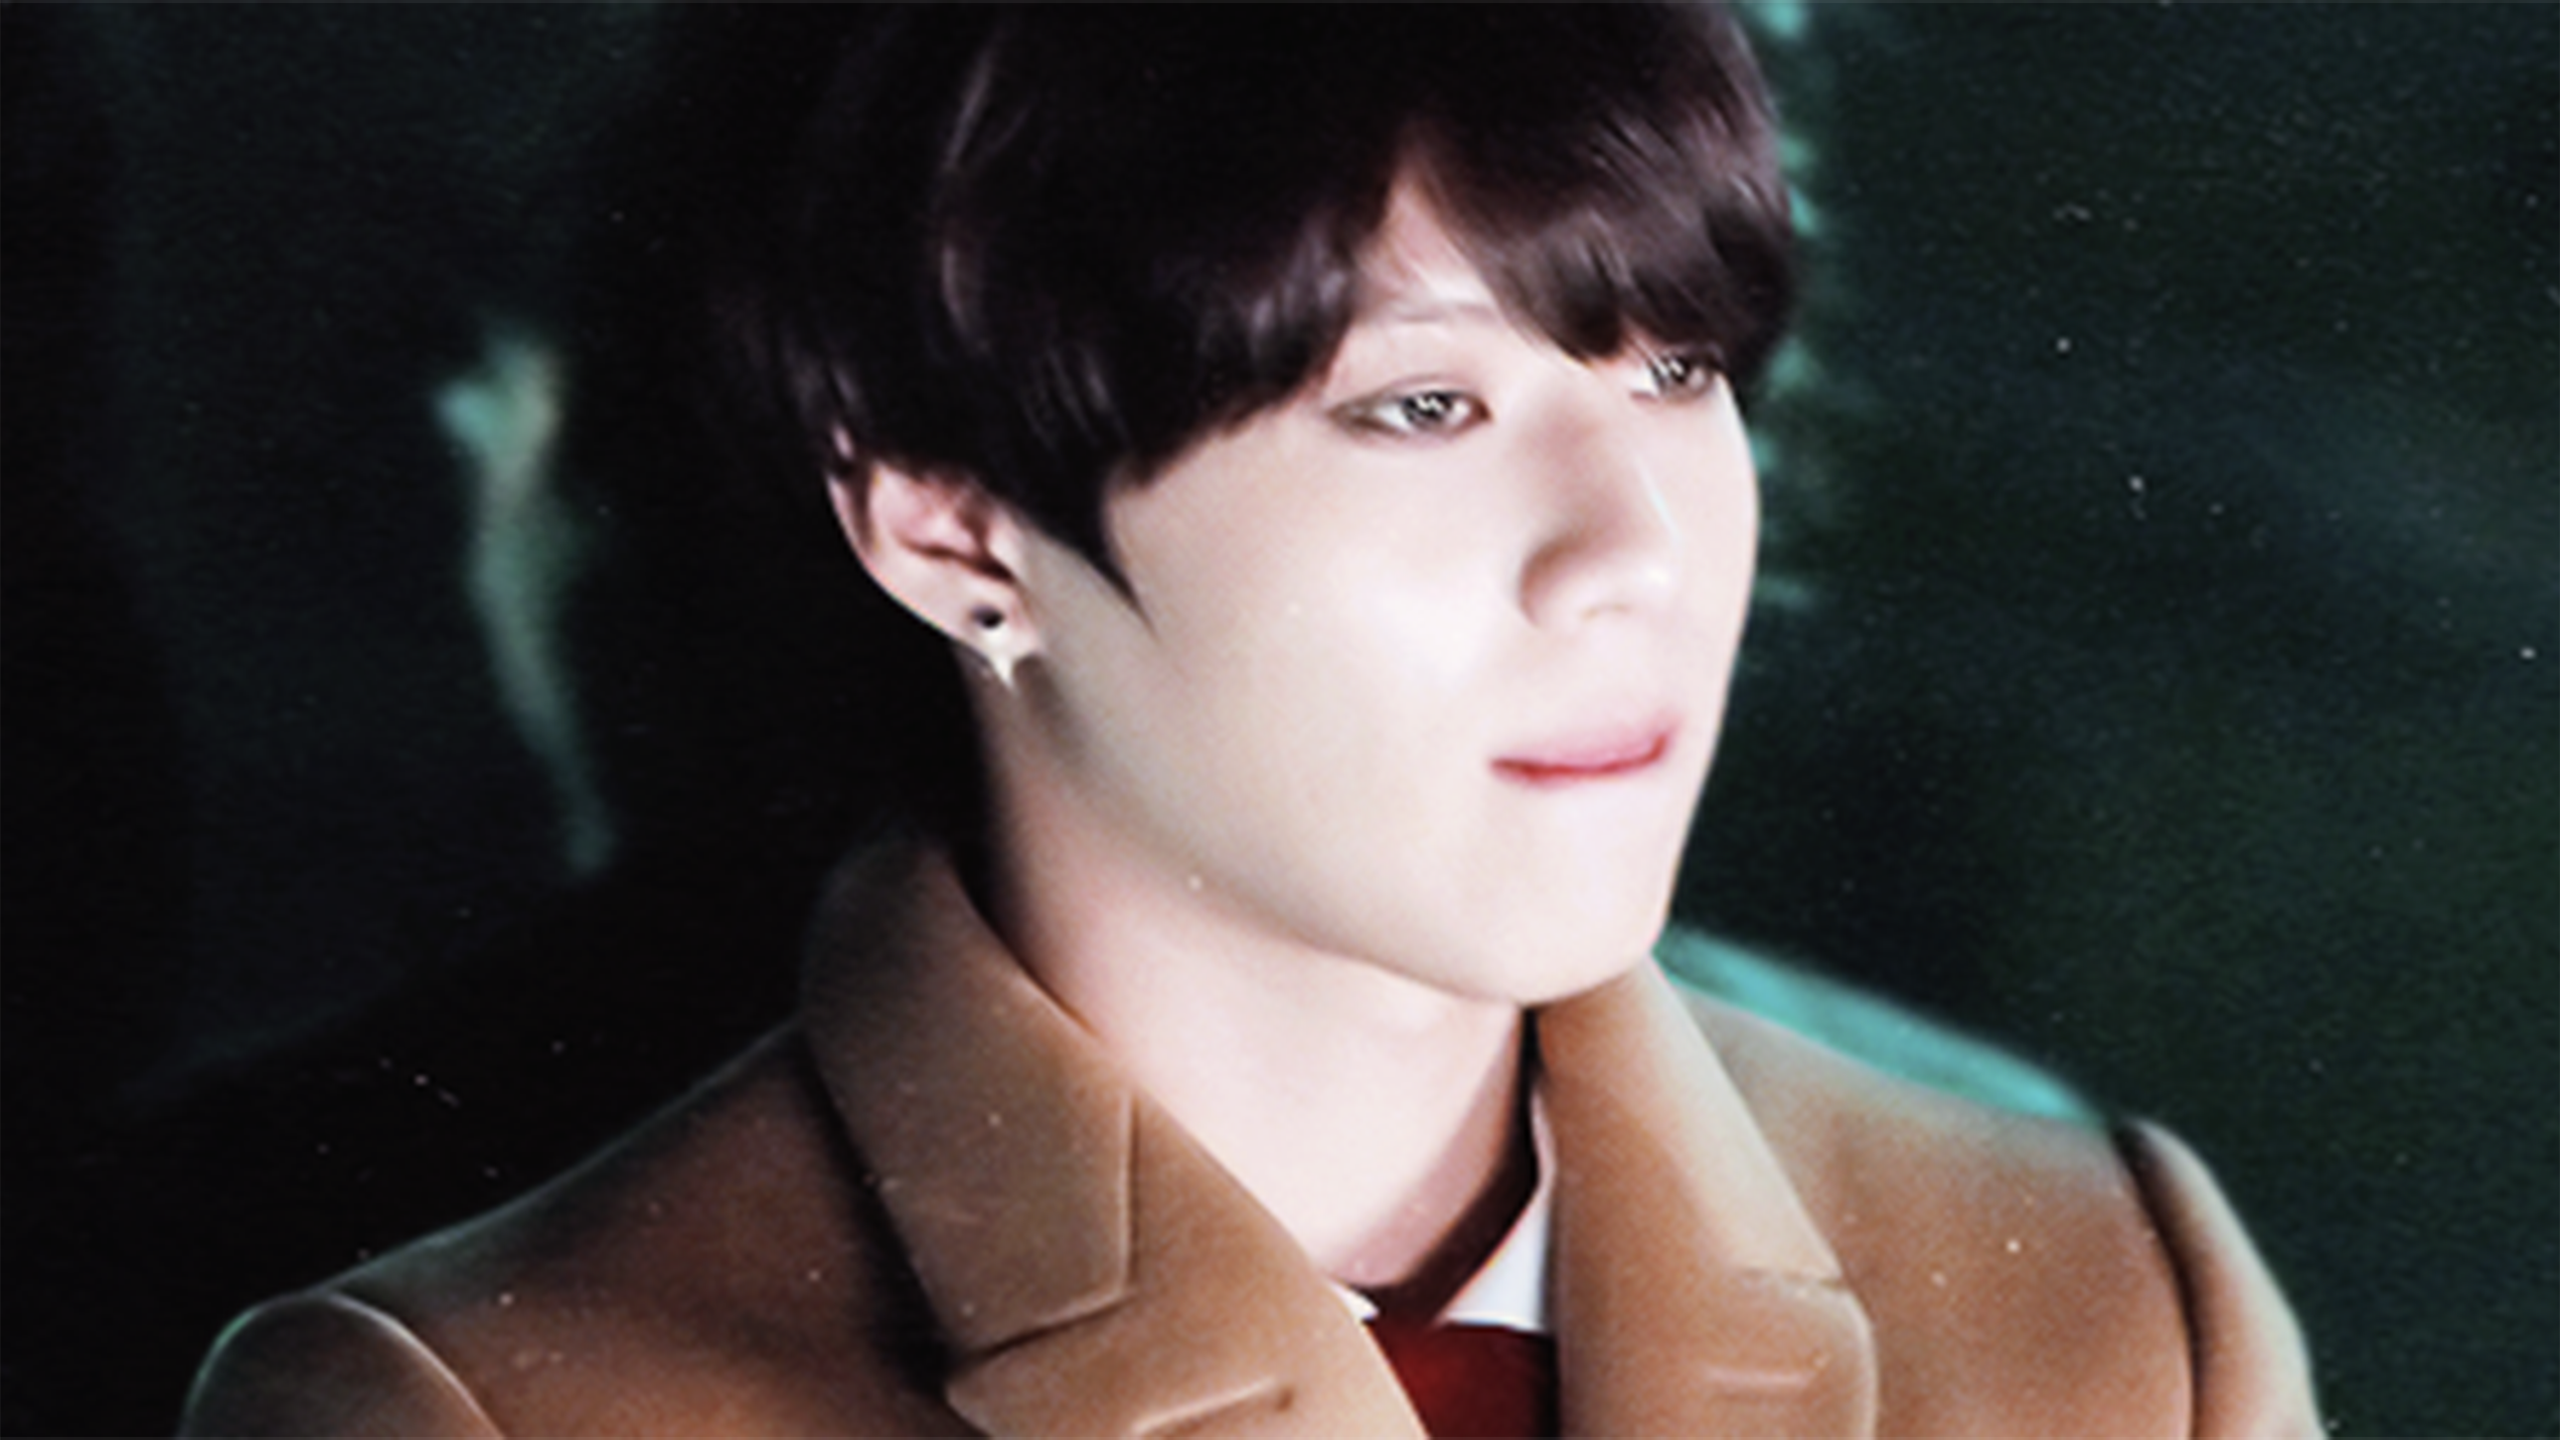 Taemin Wallpaper   SHINee Taemin Gif Wallpaper 36227657 2560x1440